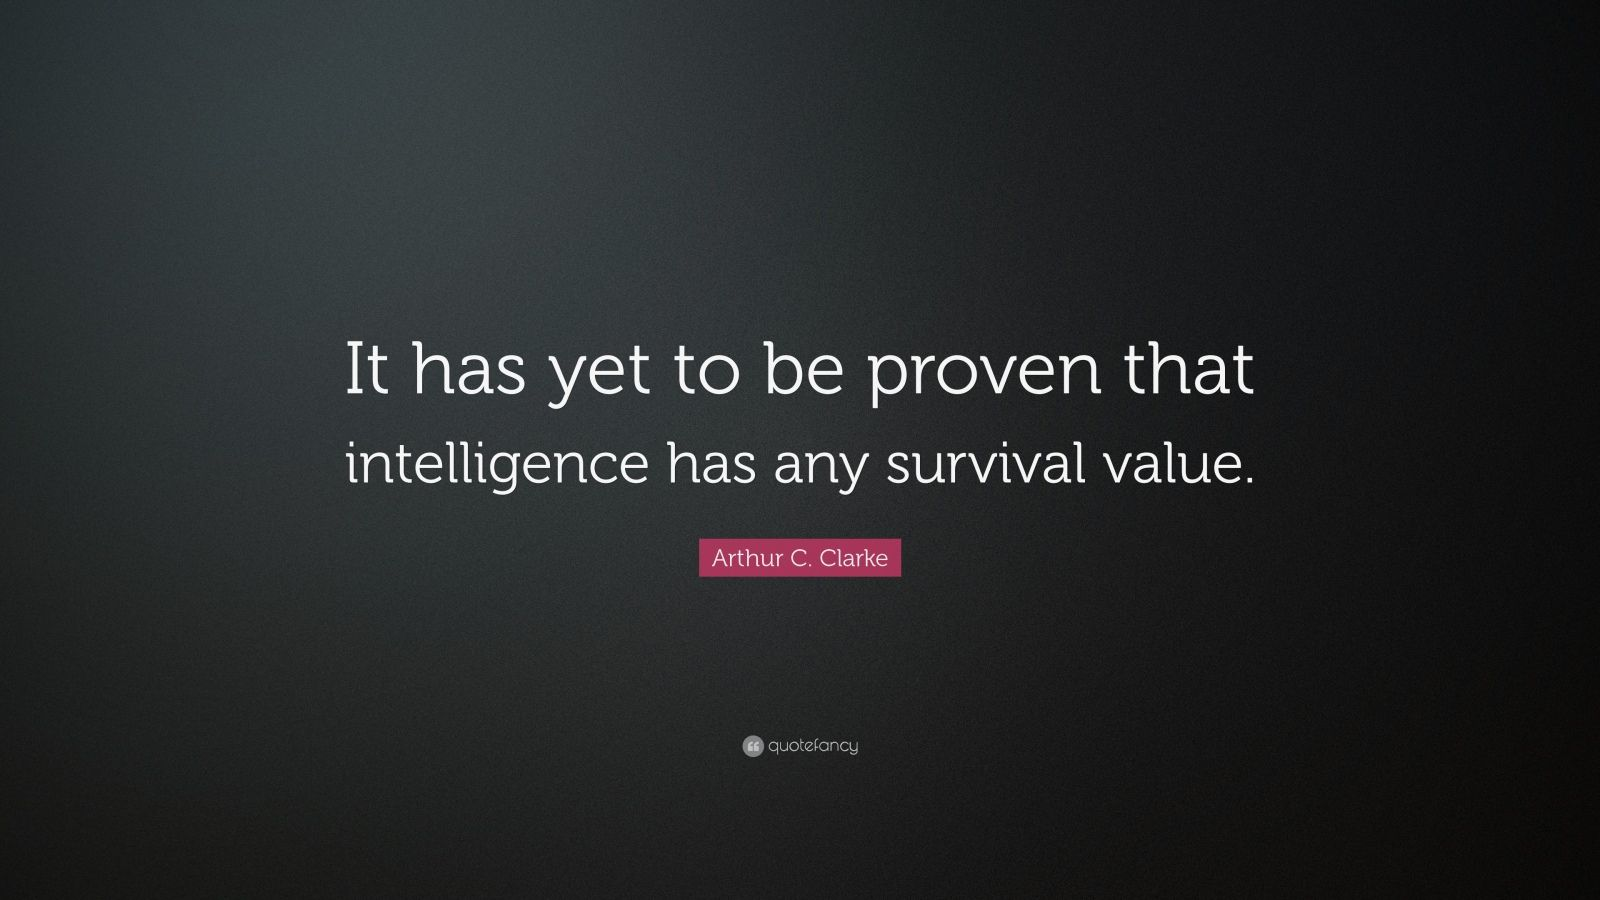 """Arthur C. Clarke Quote: """"It has yet to be proven that intelligence has any survival value."""""""